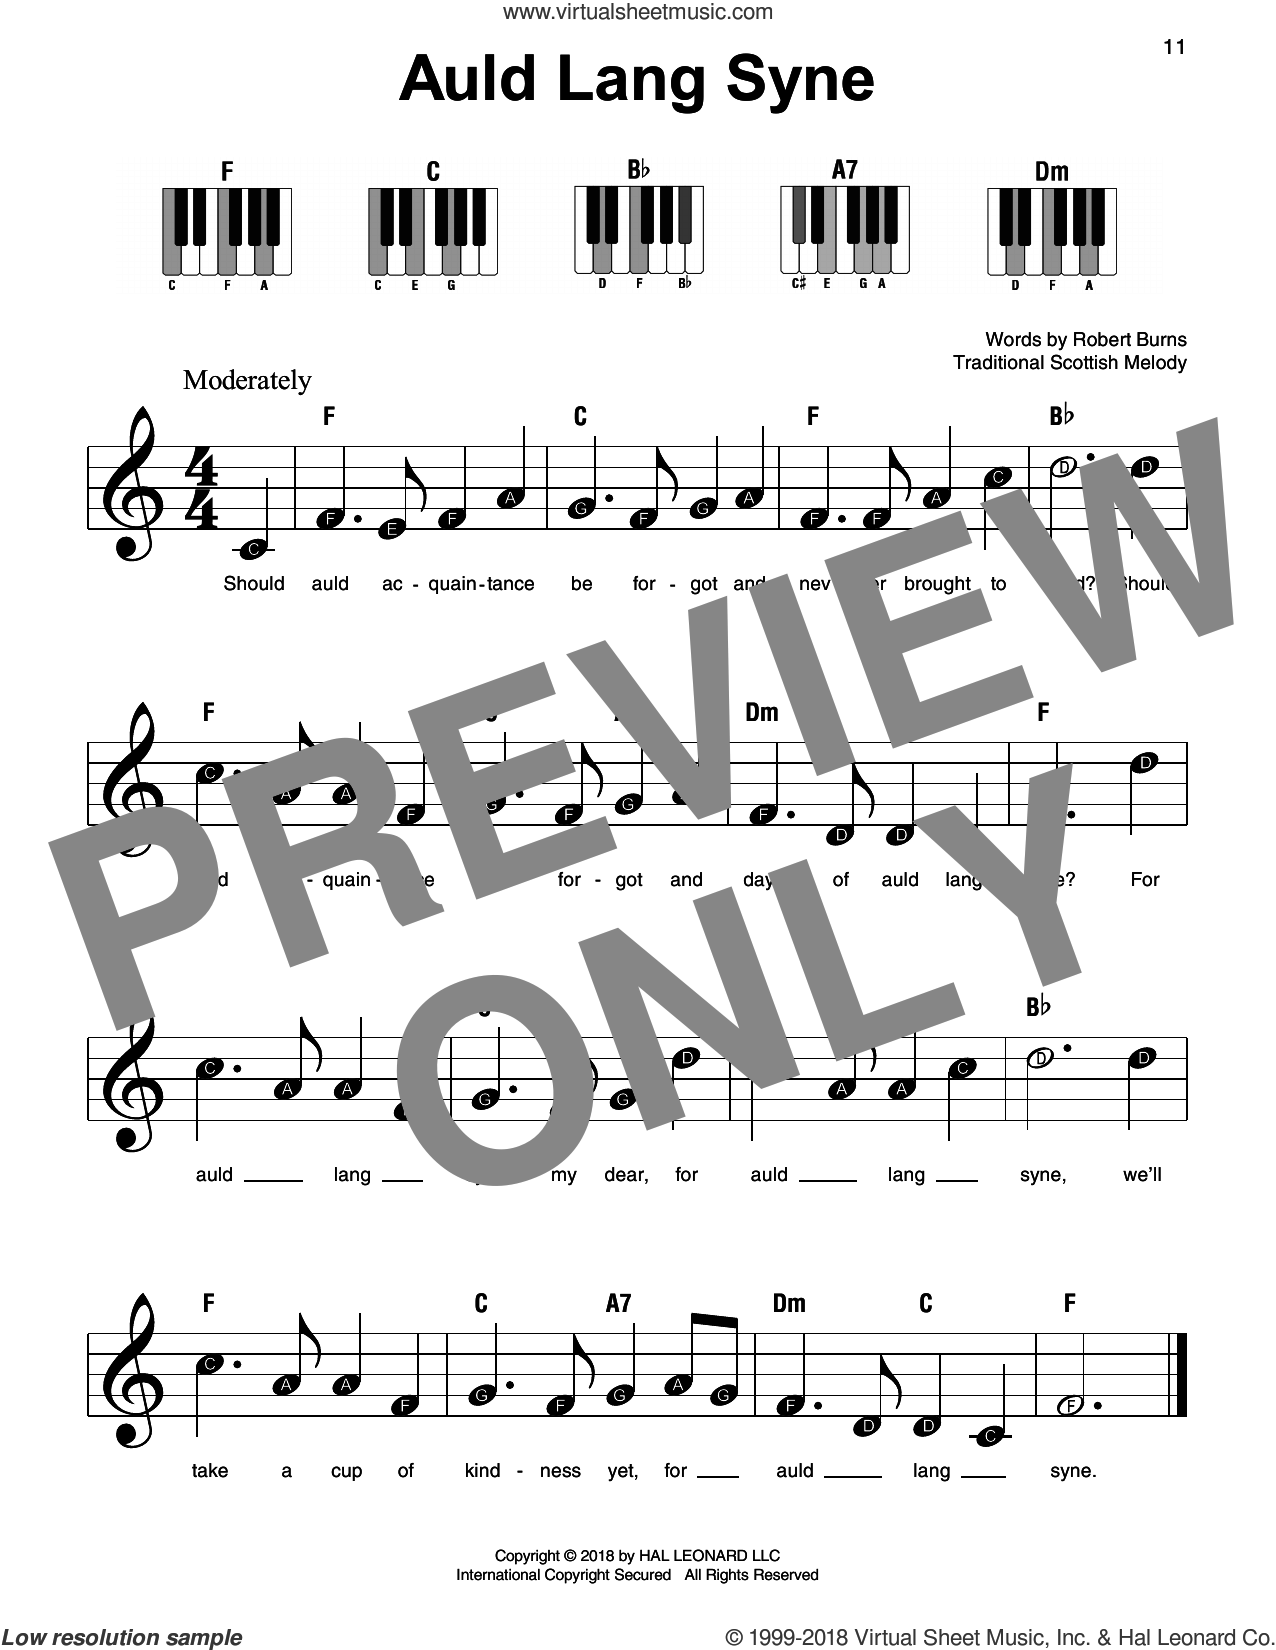 Auld Lang Syne sheet music for piano solo by Traditional Scottish Melody and Robert Burns, beginner skill level